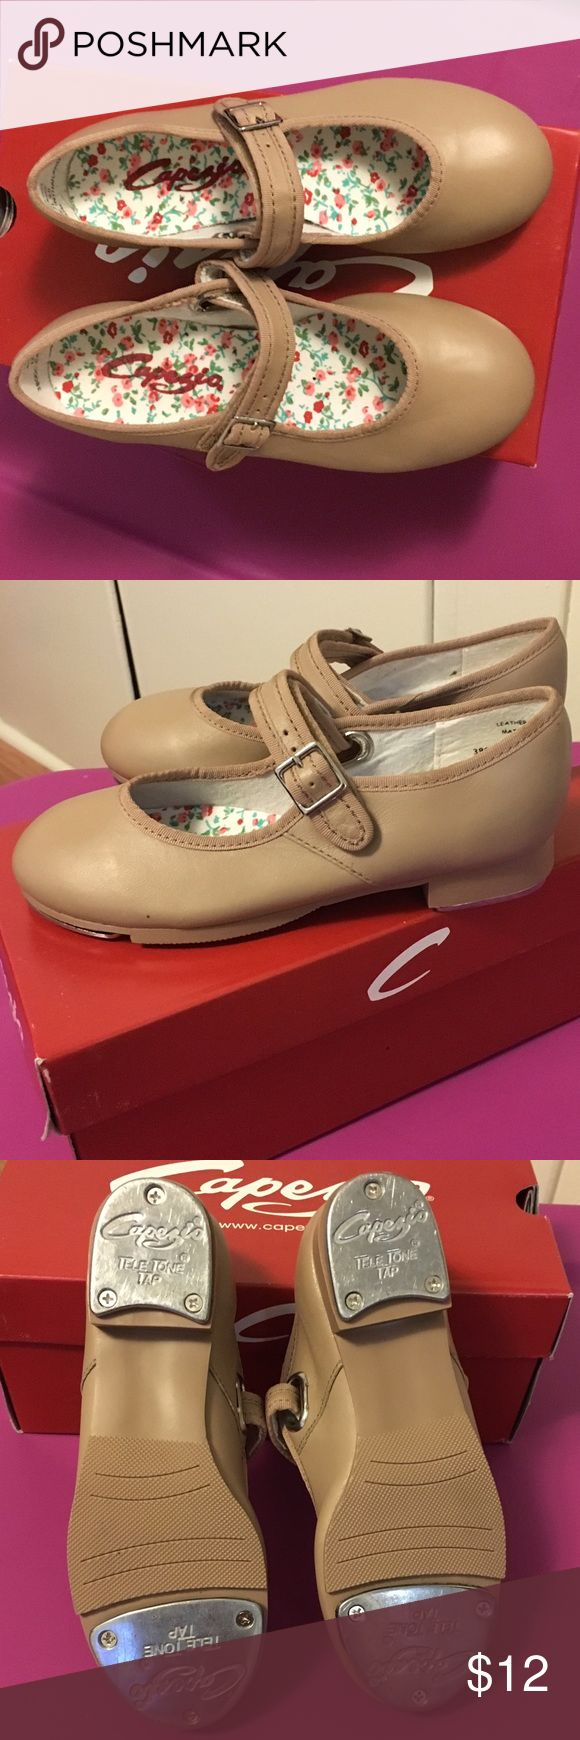 Girls Capezio Caramel Tap Shoes Girls Size 12 1/2 Capezio Caramel Tap Shoes.  Leather upper; Velcro buckle.  Like new condition. Had to purchase toward the ending of daughters dance class because she outgrew the ones she started with so these were hardly used.  Pics show shoes have no scratch or scuff marks. Smoke-free, Pet-free home Capezio Shoes Dress Shoes